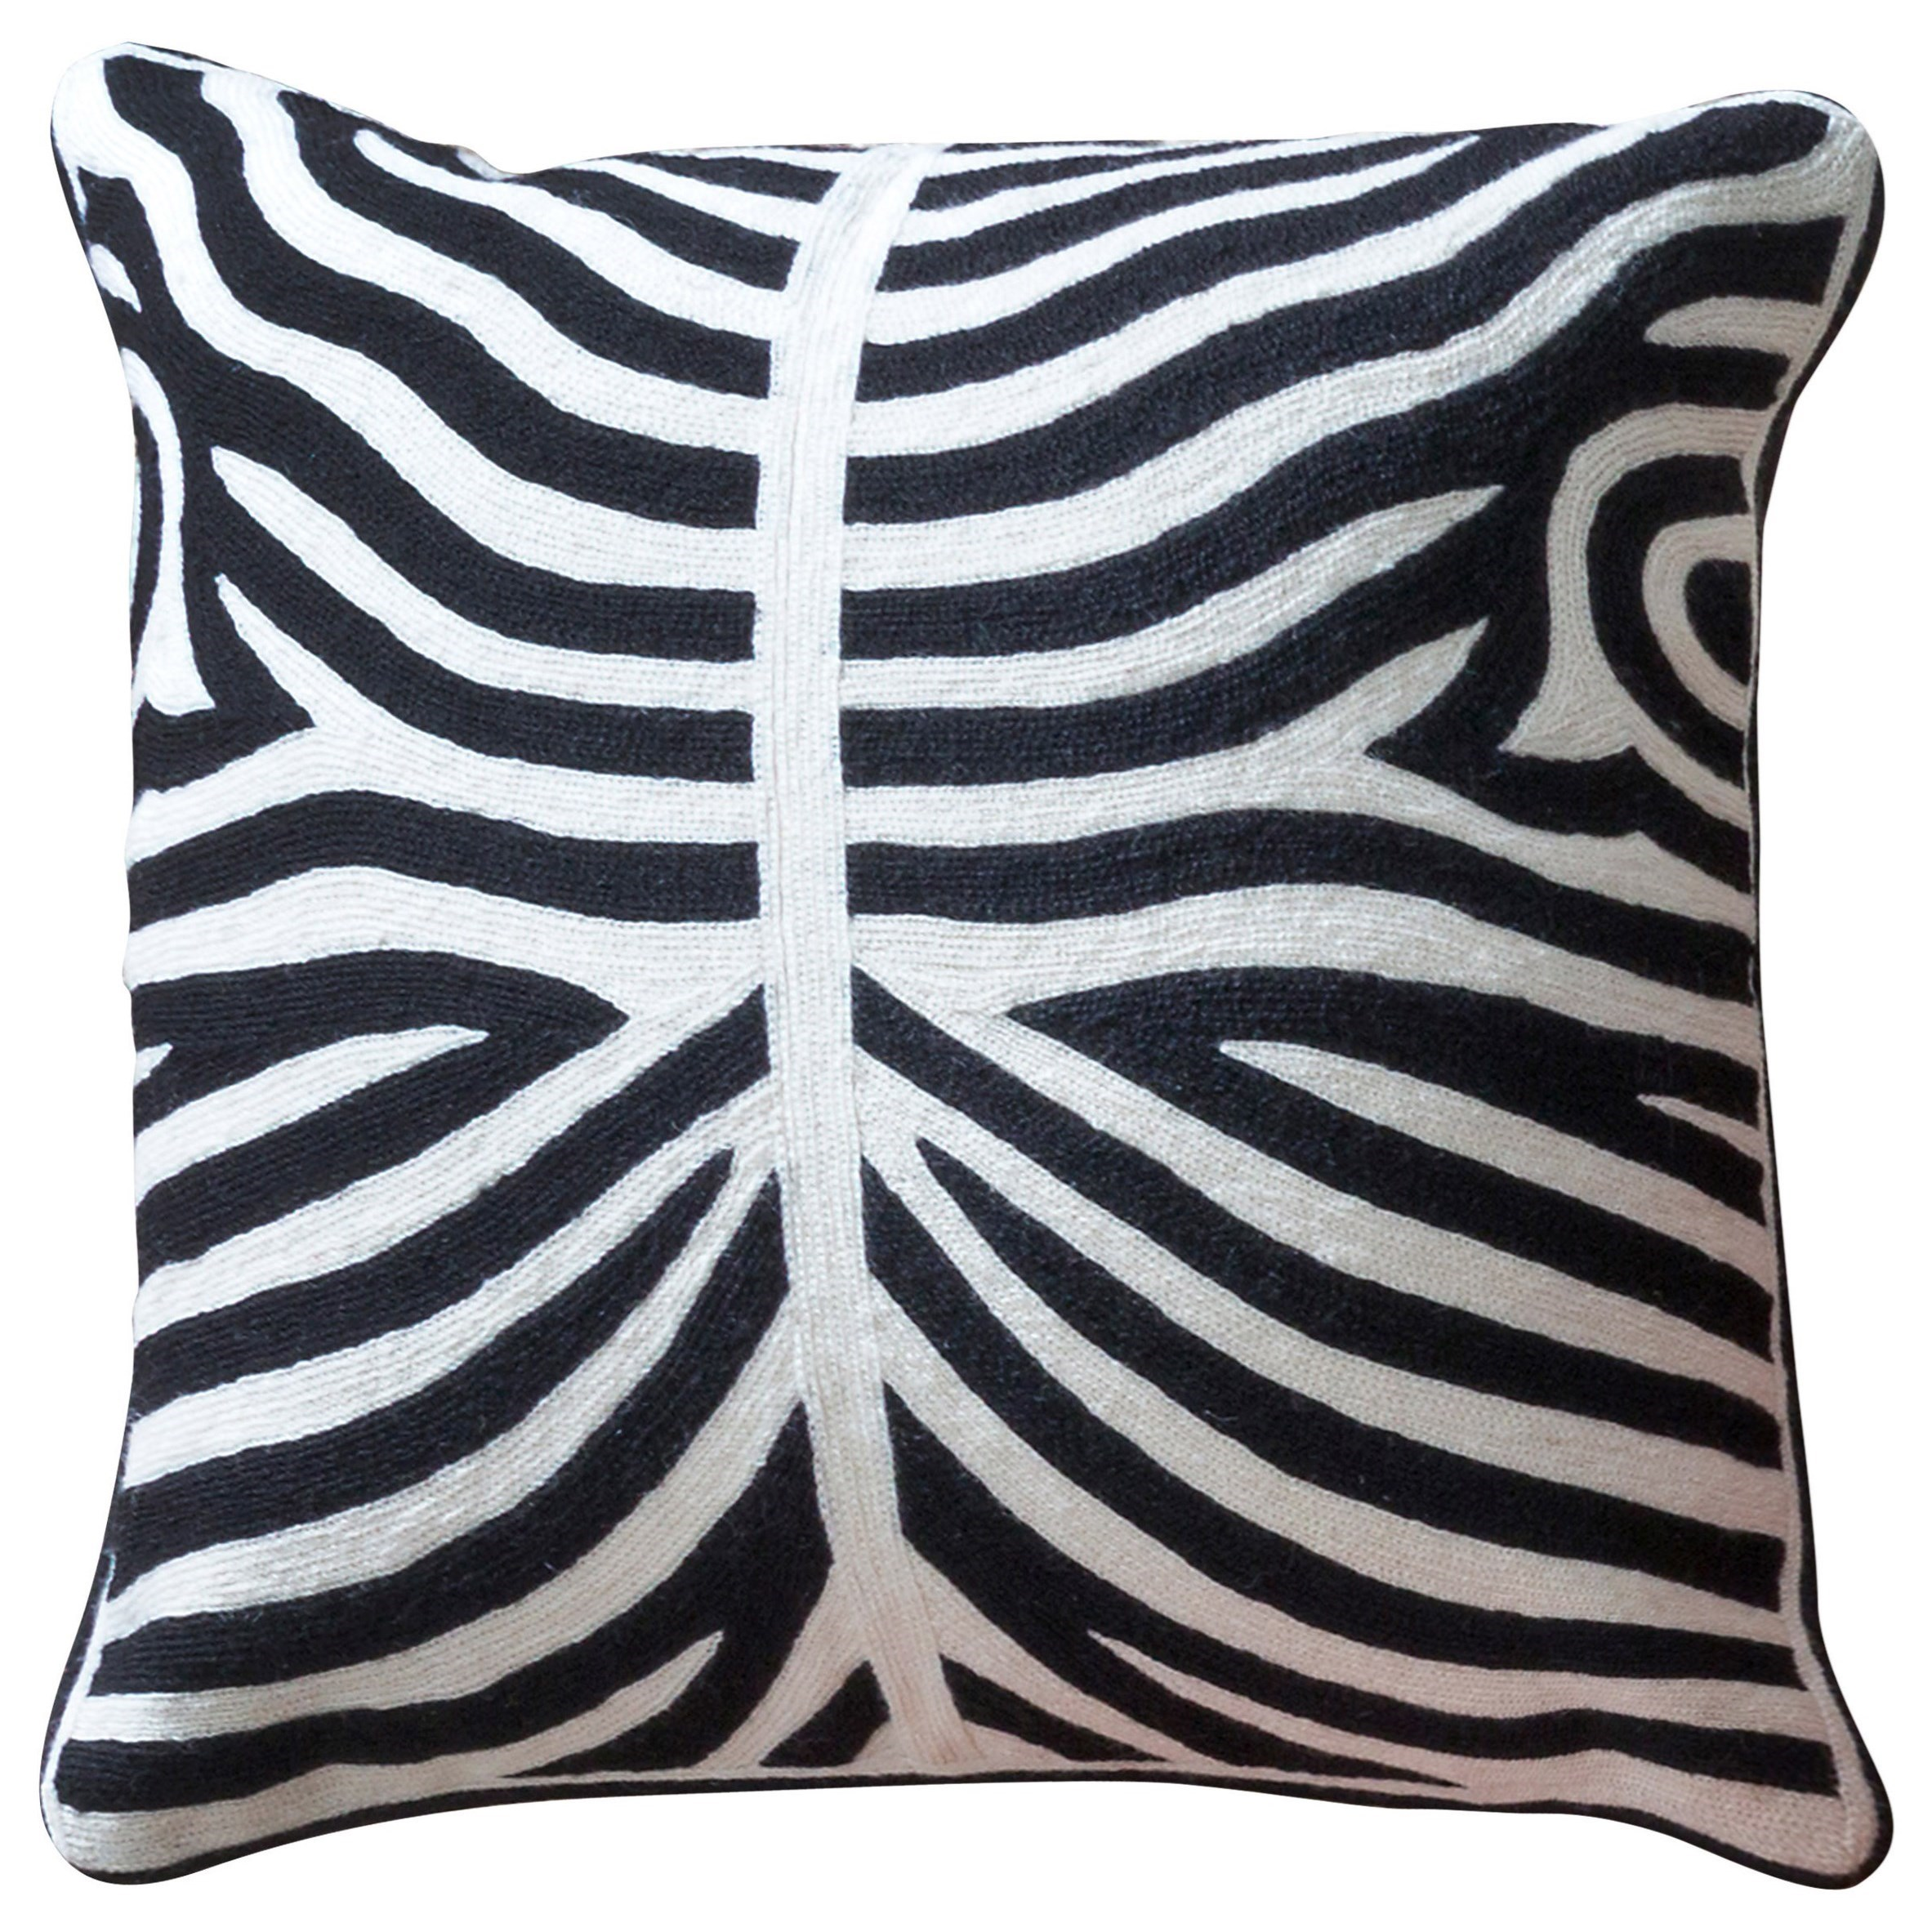 Accessories Black and White Accent Pillow by StyleCraft at Alison Craig Home Furnishings